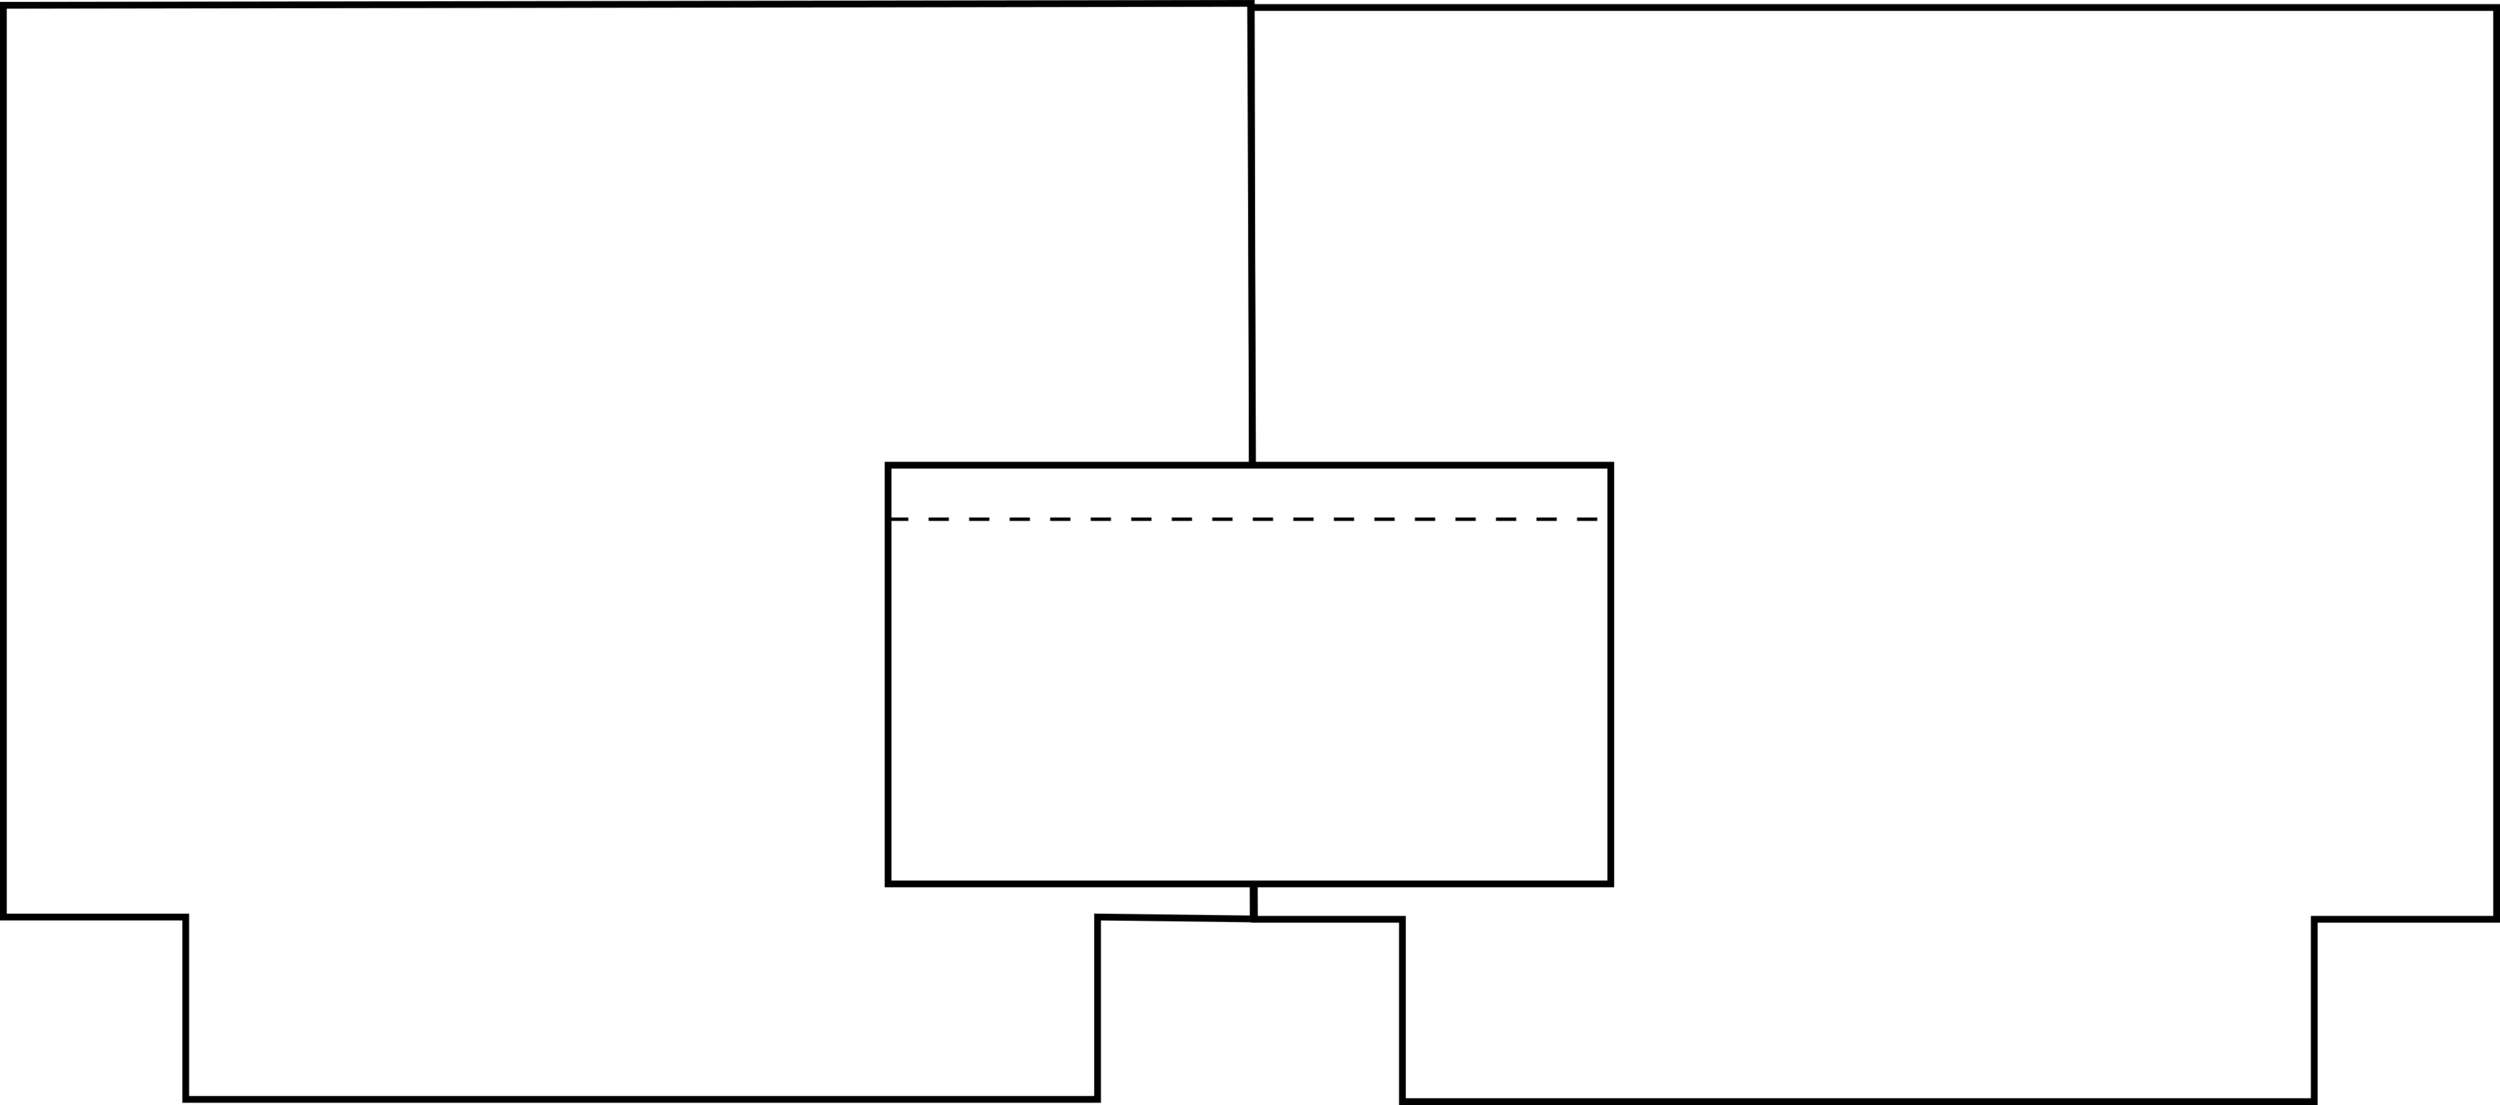 It was hard to see the pocket in pictures, so I made a diagram.